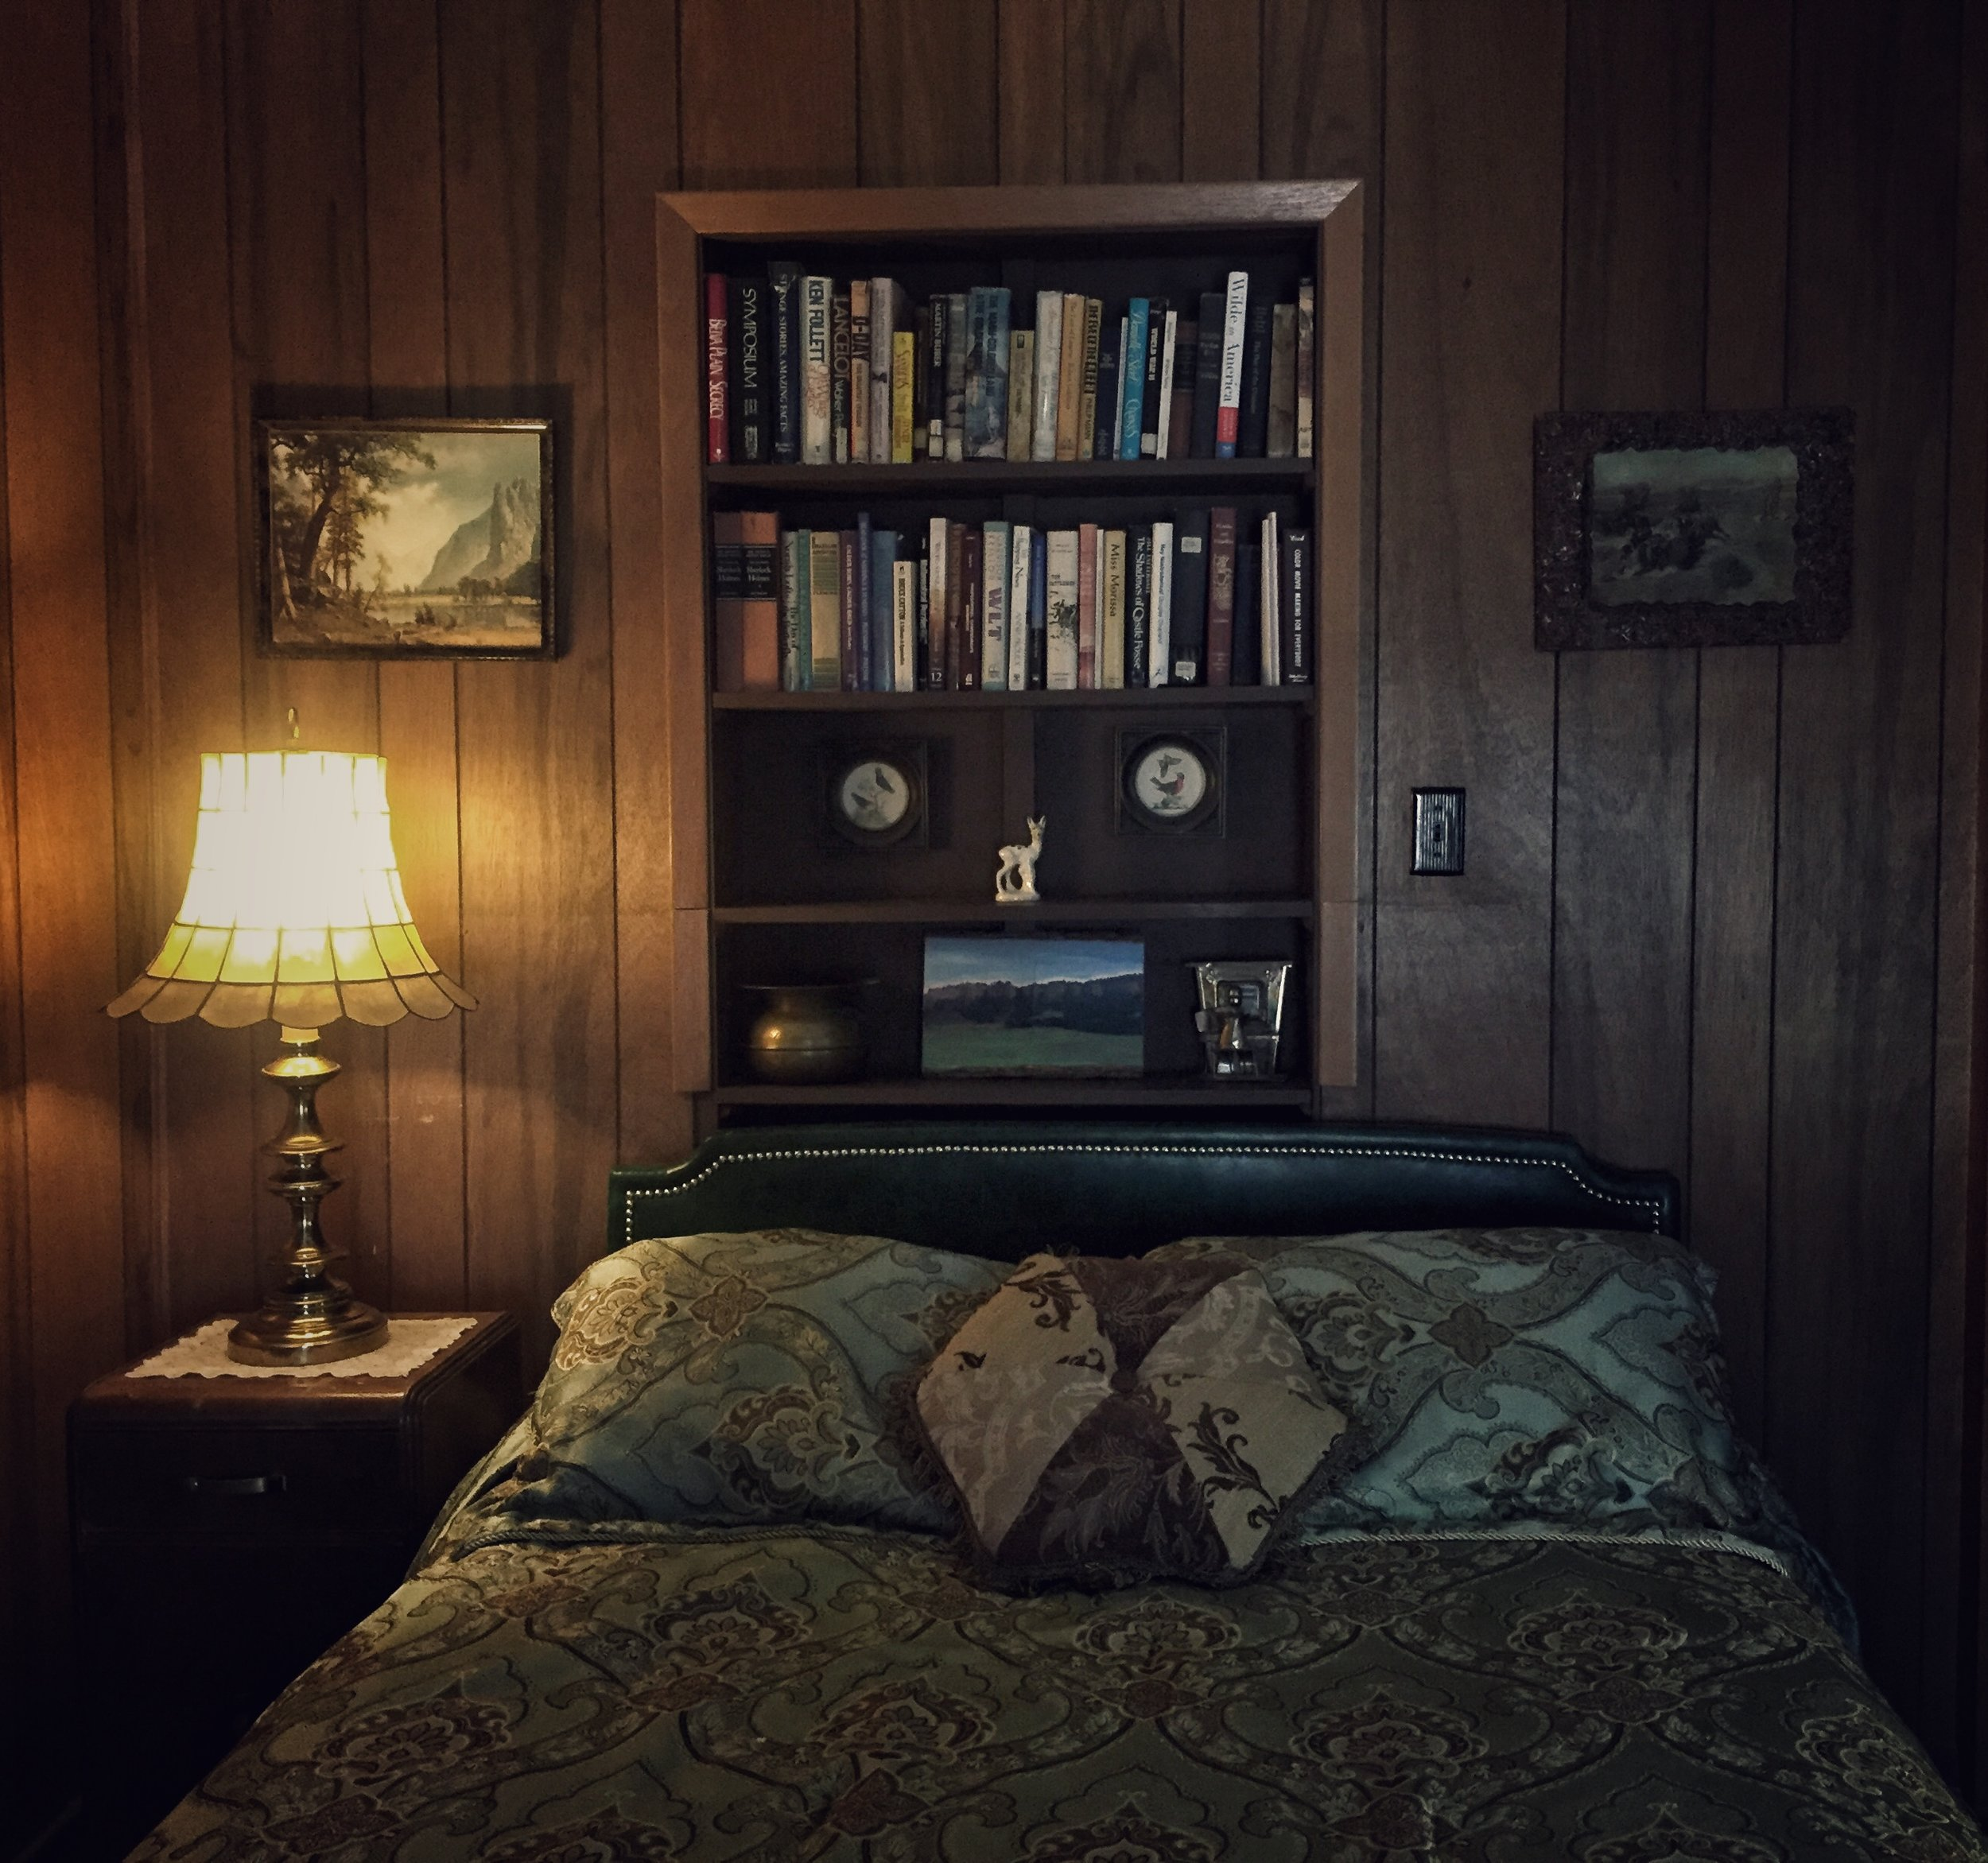 My room last night - The Mari Sandoz Suite at the Olde Main Street Inn in Chadron, NE.